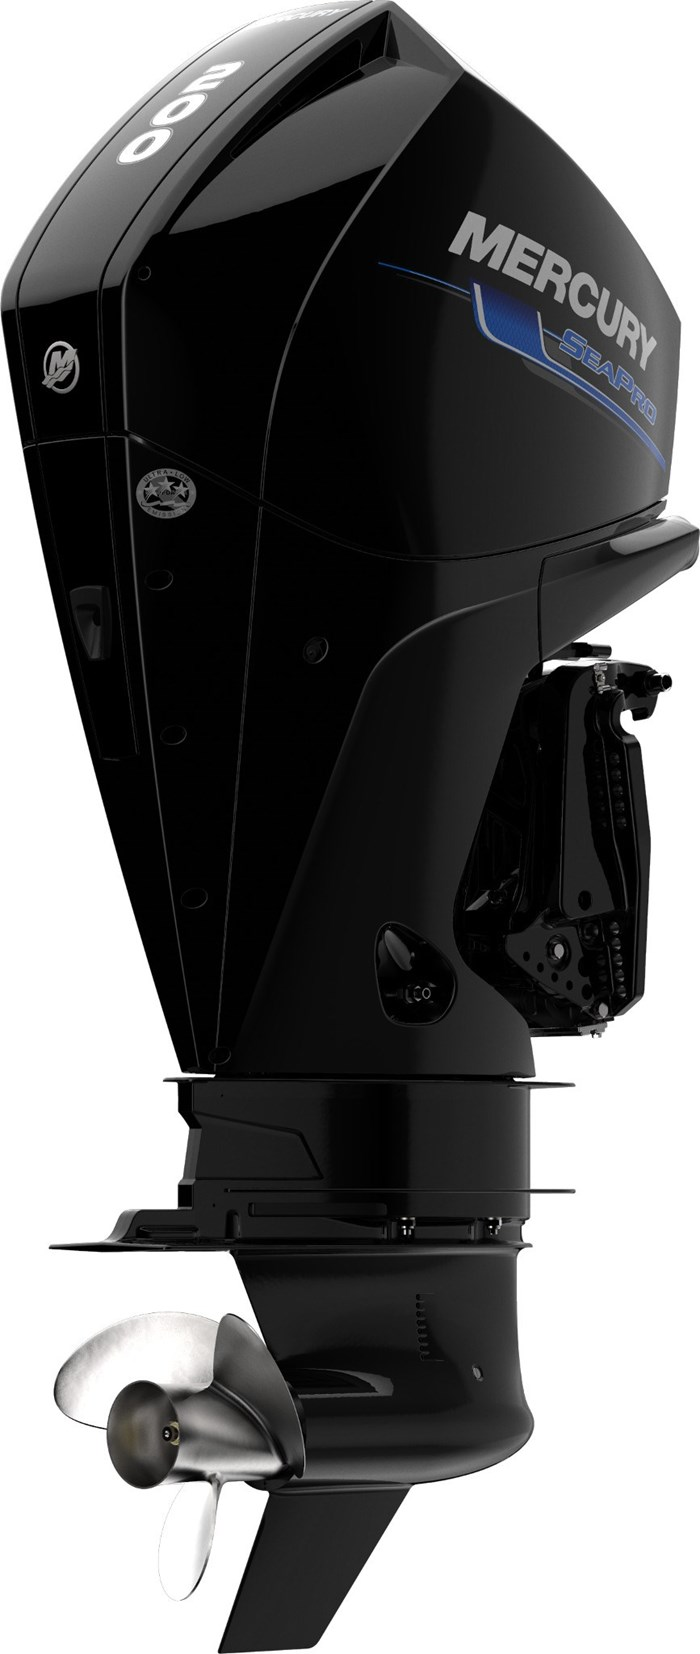 2020 Mercury 200XL V-6 4-Stroke SeaPro DTS Commercial Outboard Photo 7 of 27